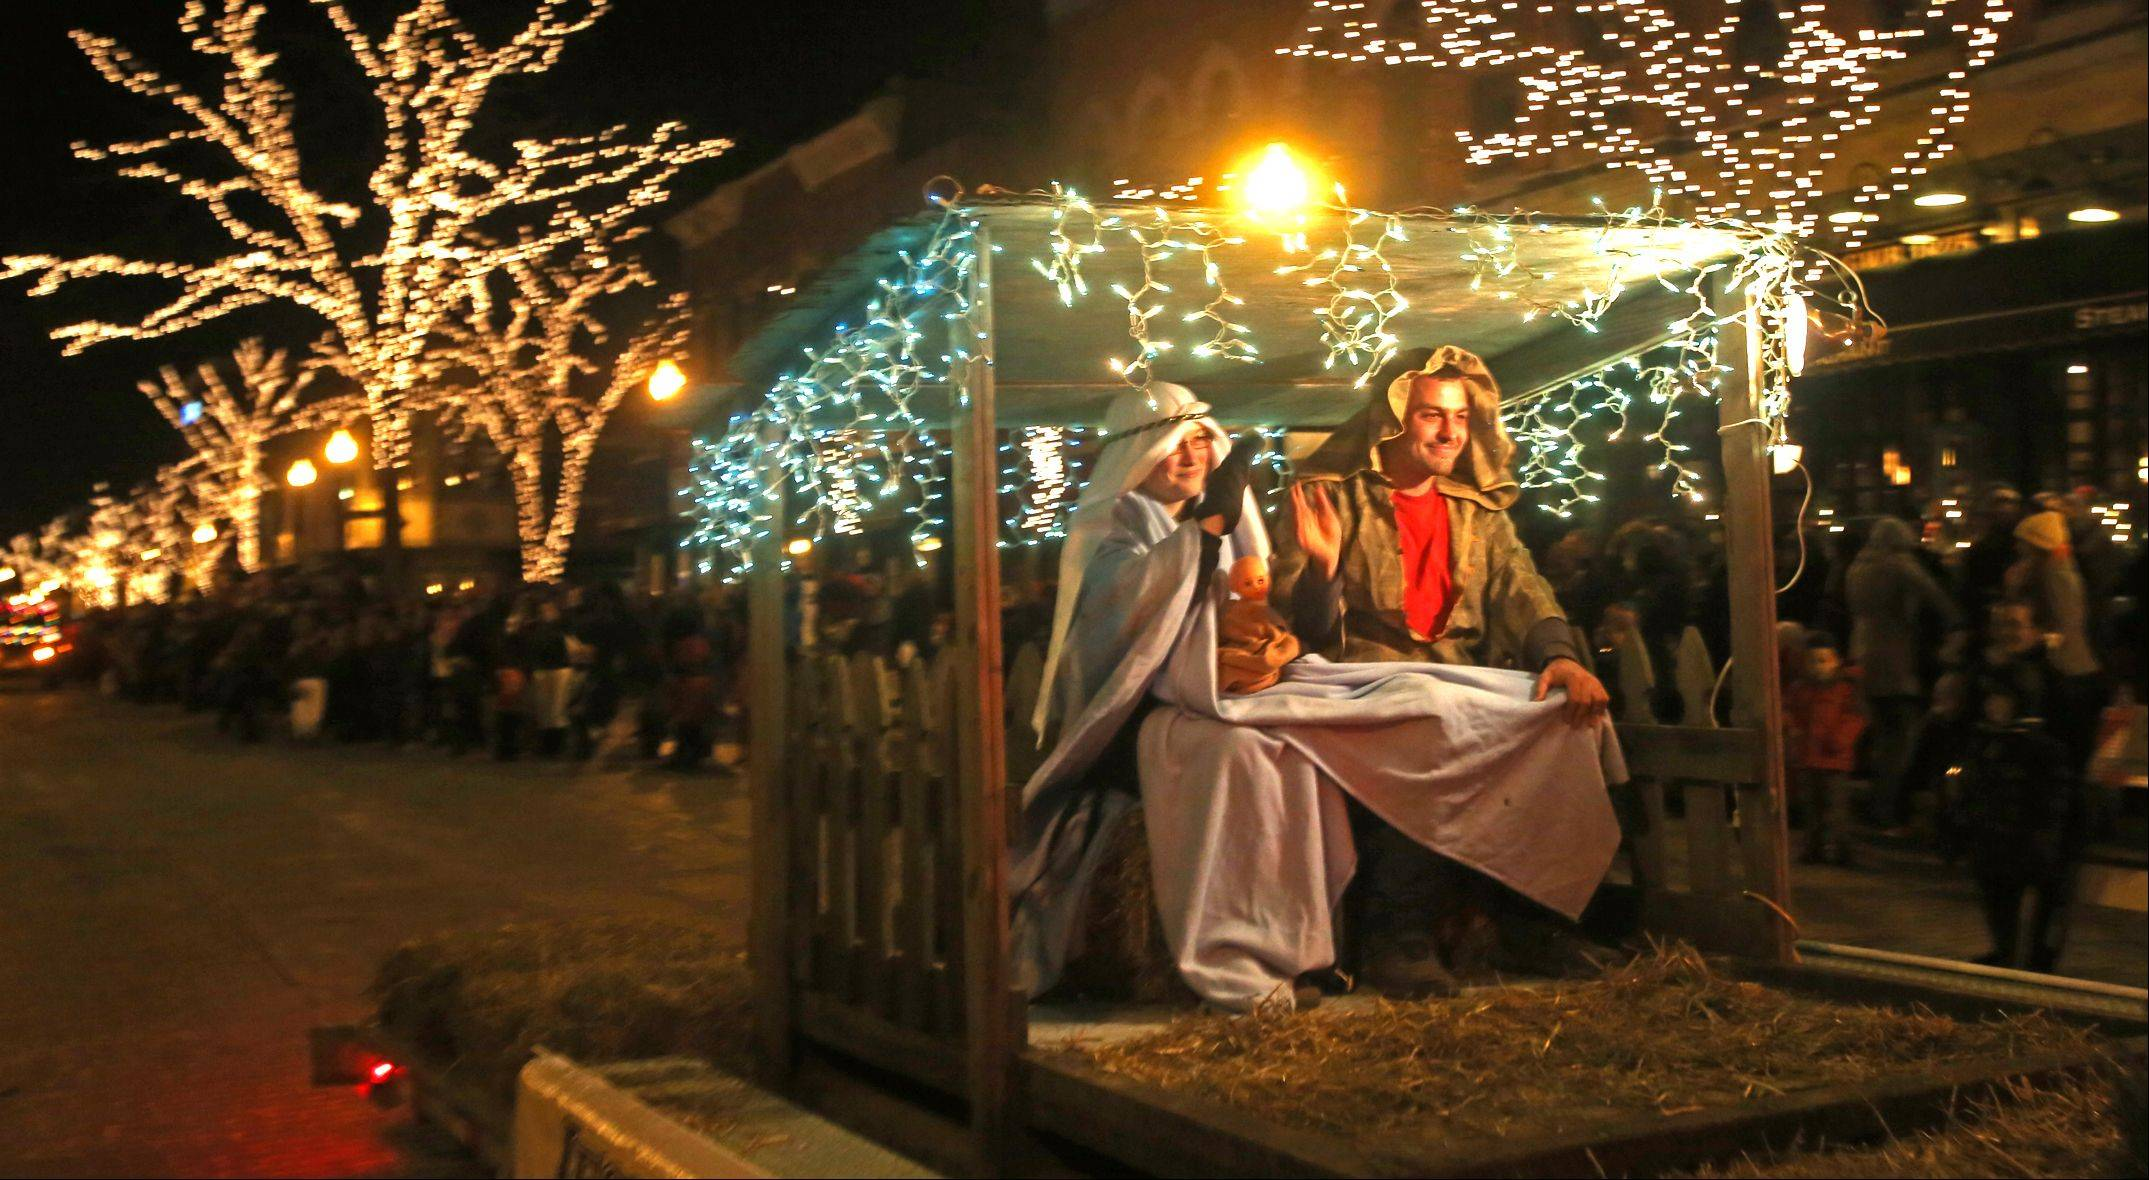 Daniel White/dwhite@dailyherald.comA nativity scene sponsored by Wheaton Nursery makes its way down Front Street during the Wheaton Lighted Holiday Parade.